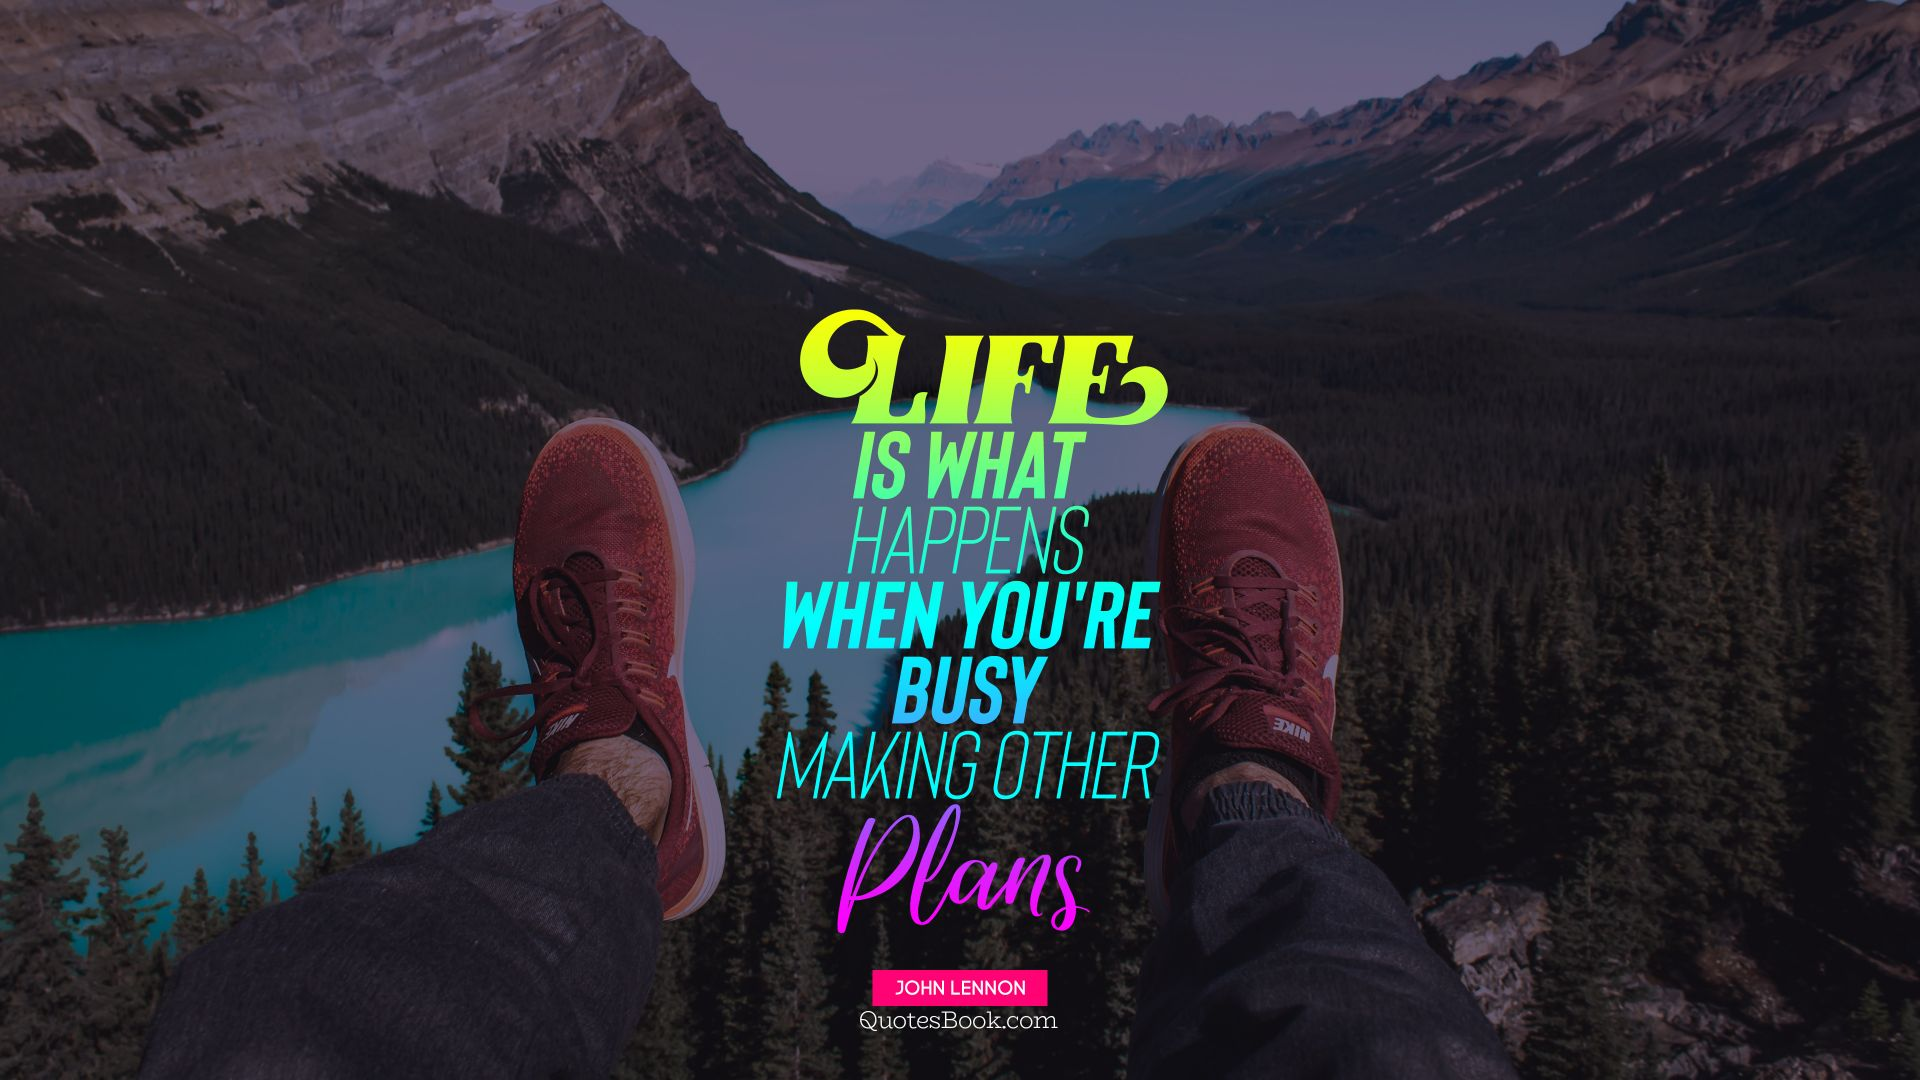 Life is what happens when you're busy making other plans. - Quote by John Lennon